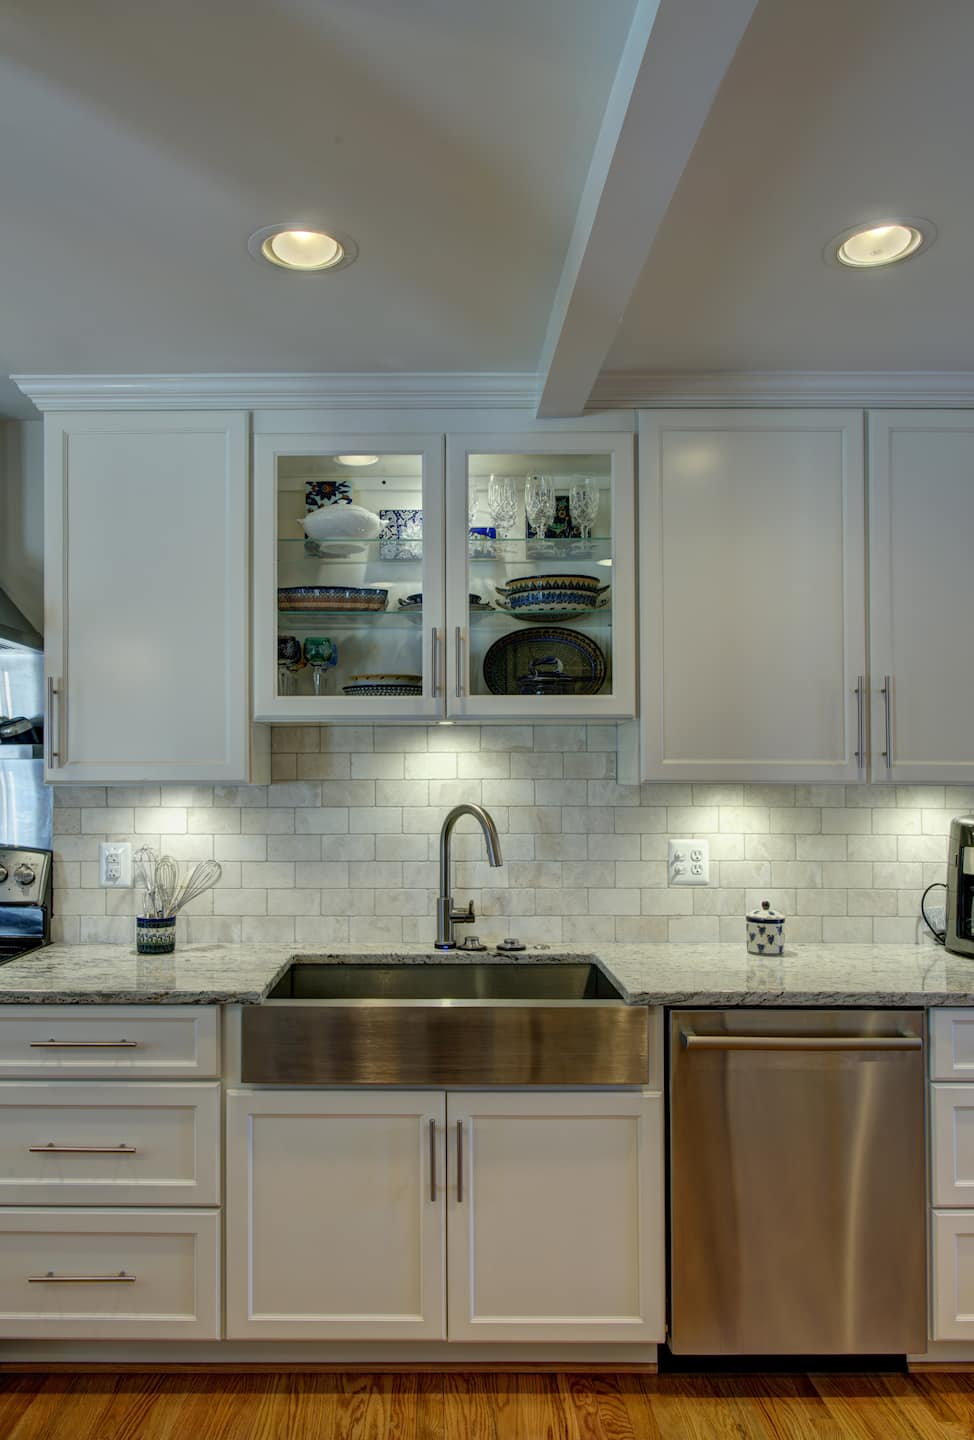 Kitchen Cabinets Under Lighting Under Cabinet Lighting Angie 39s List